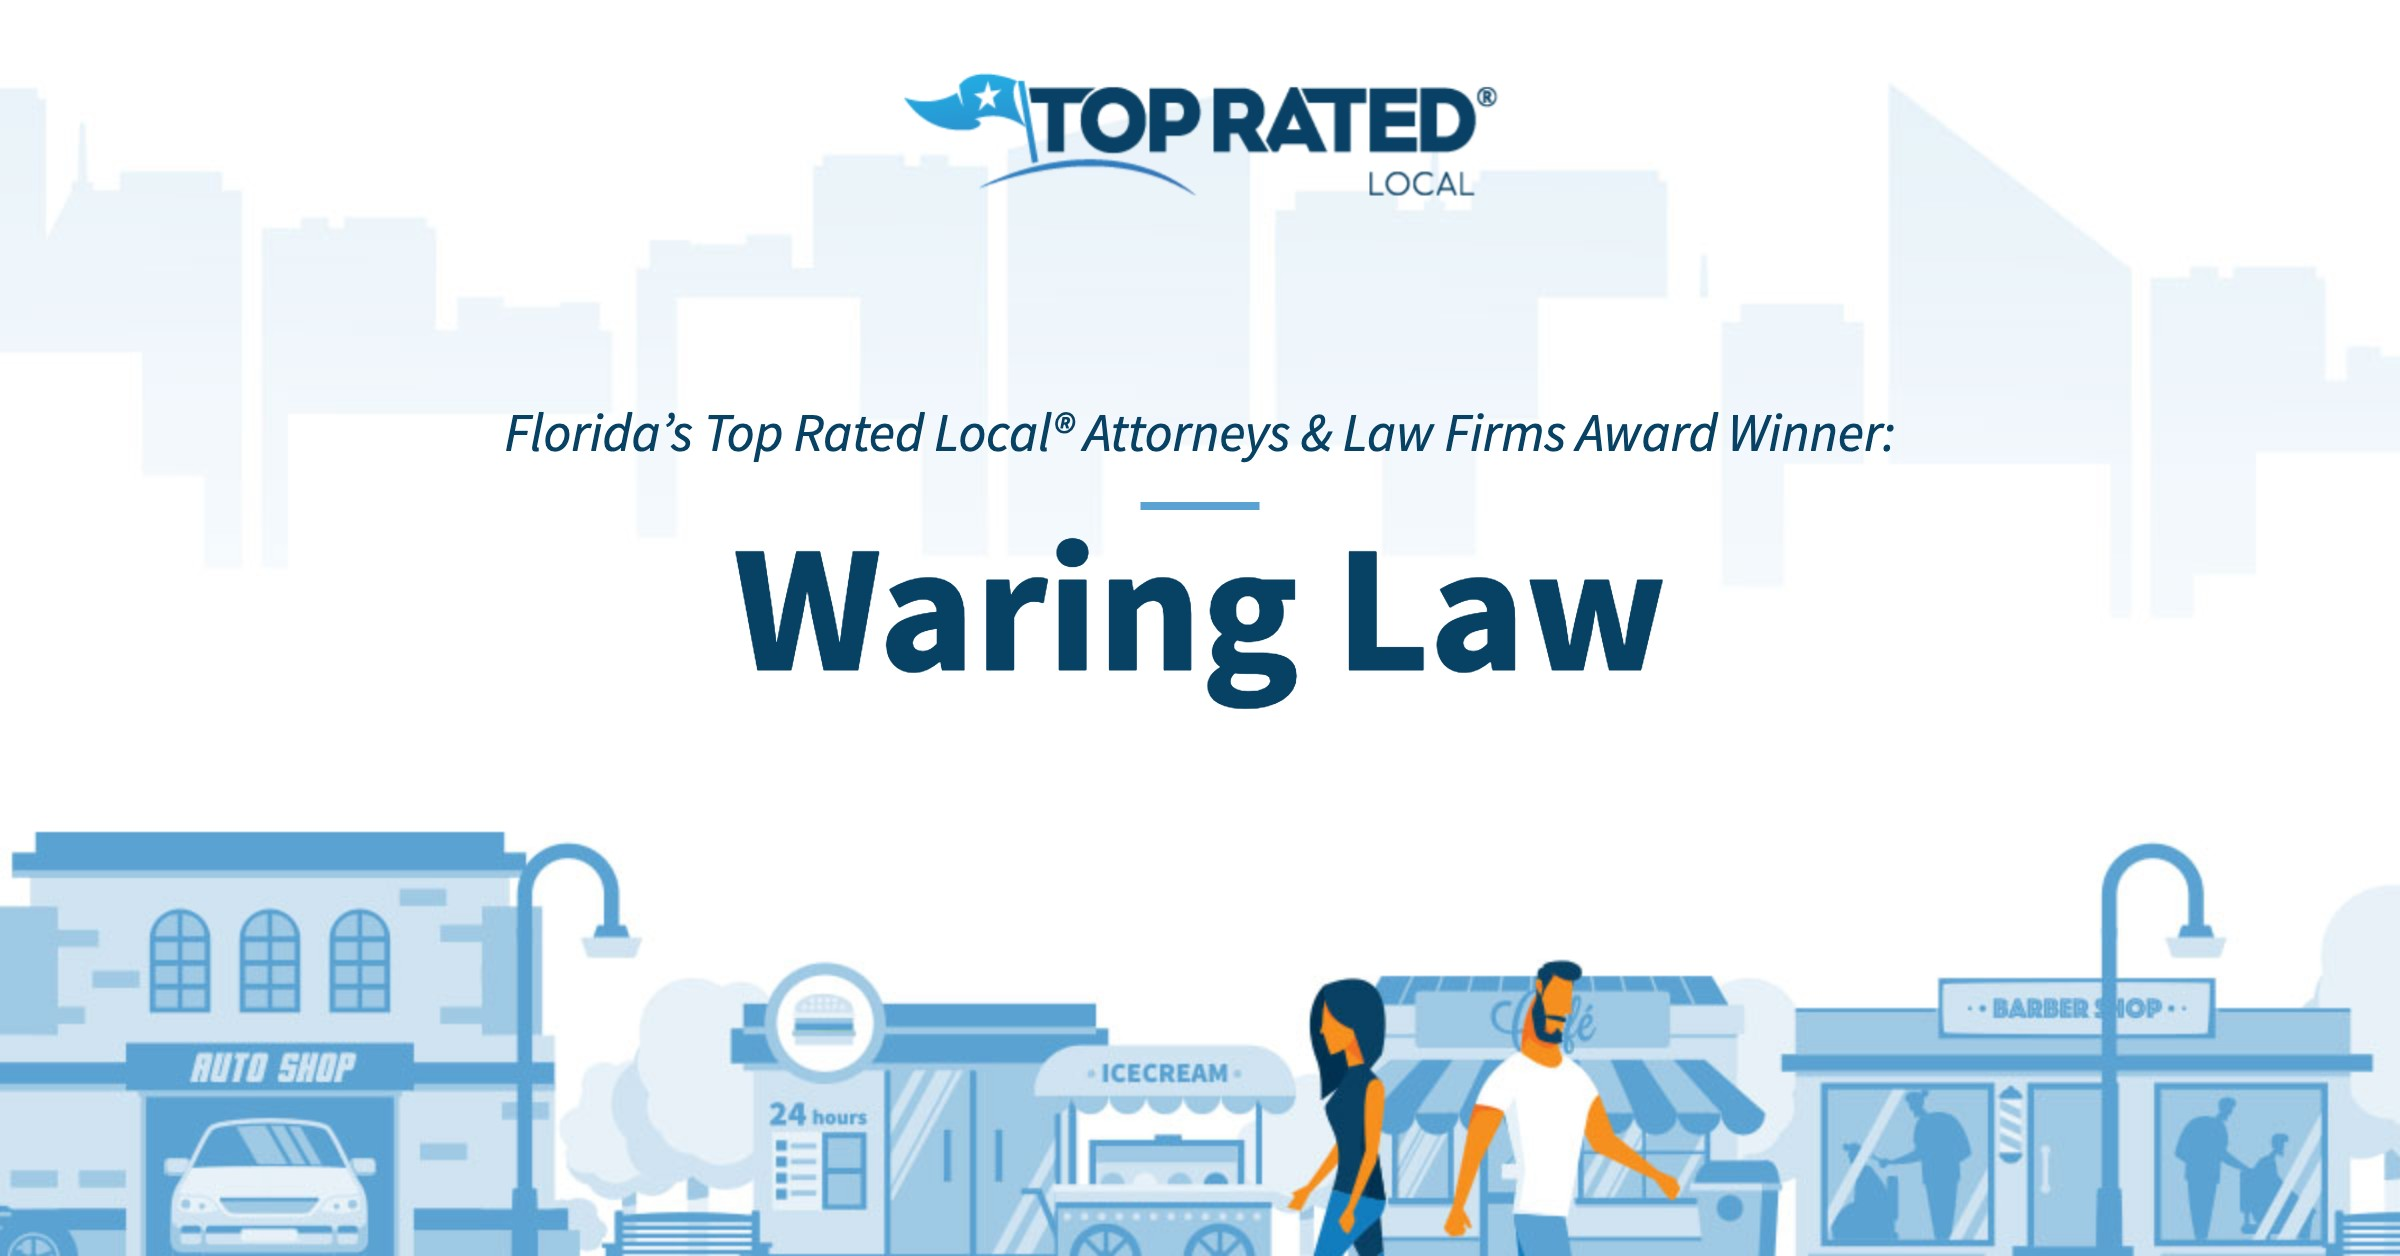 Florida's Top Rated Local® Attorneys & Law Firms Award Winner: Waring Law